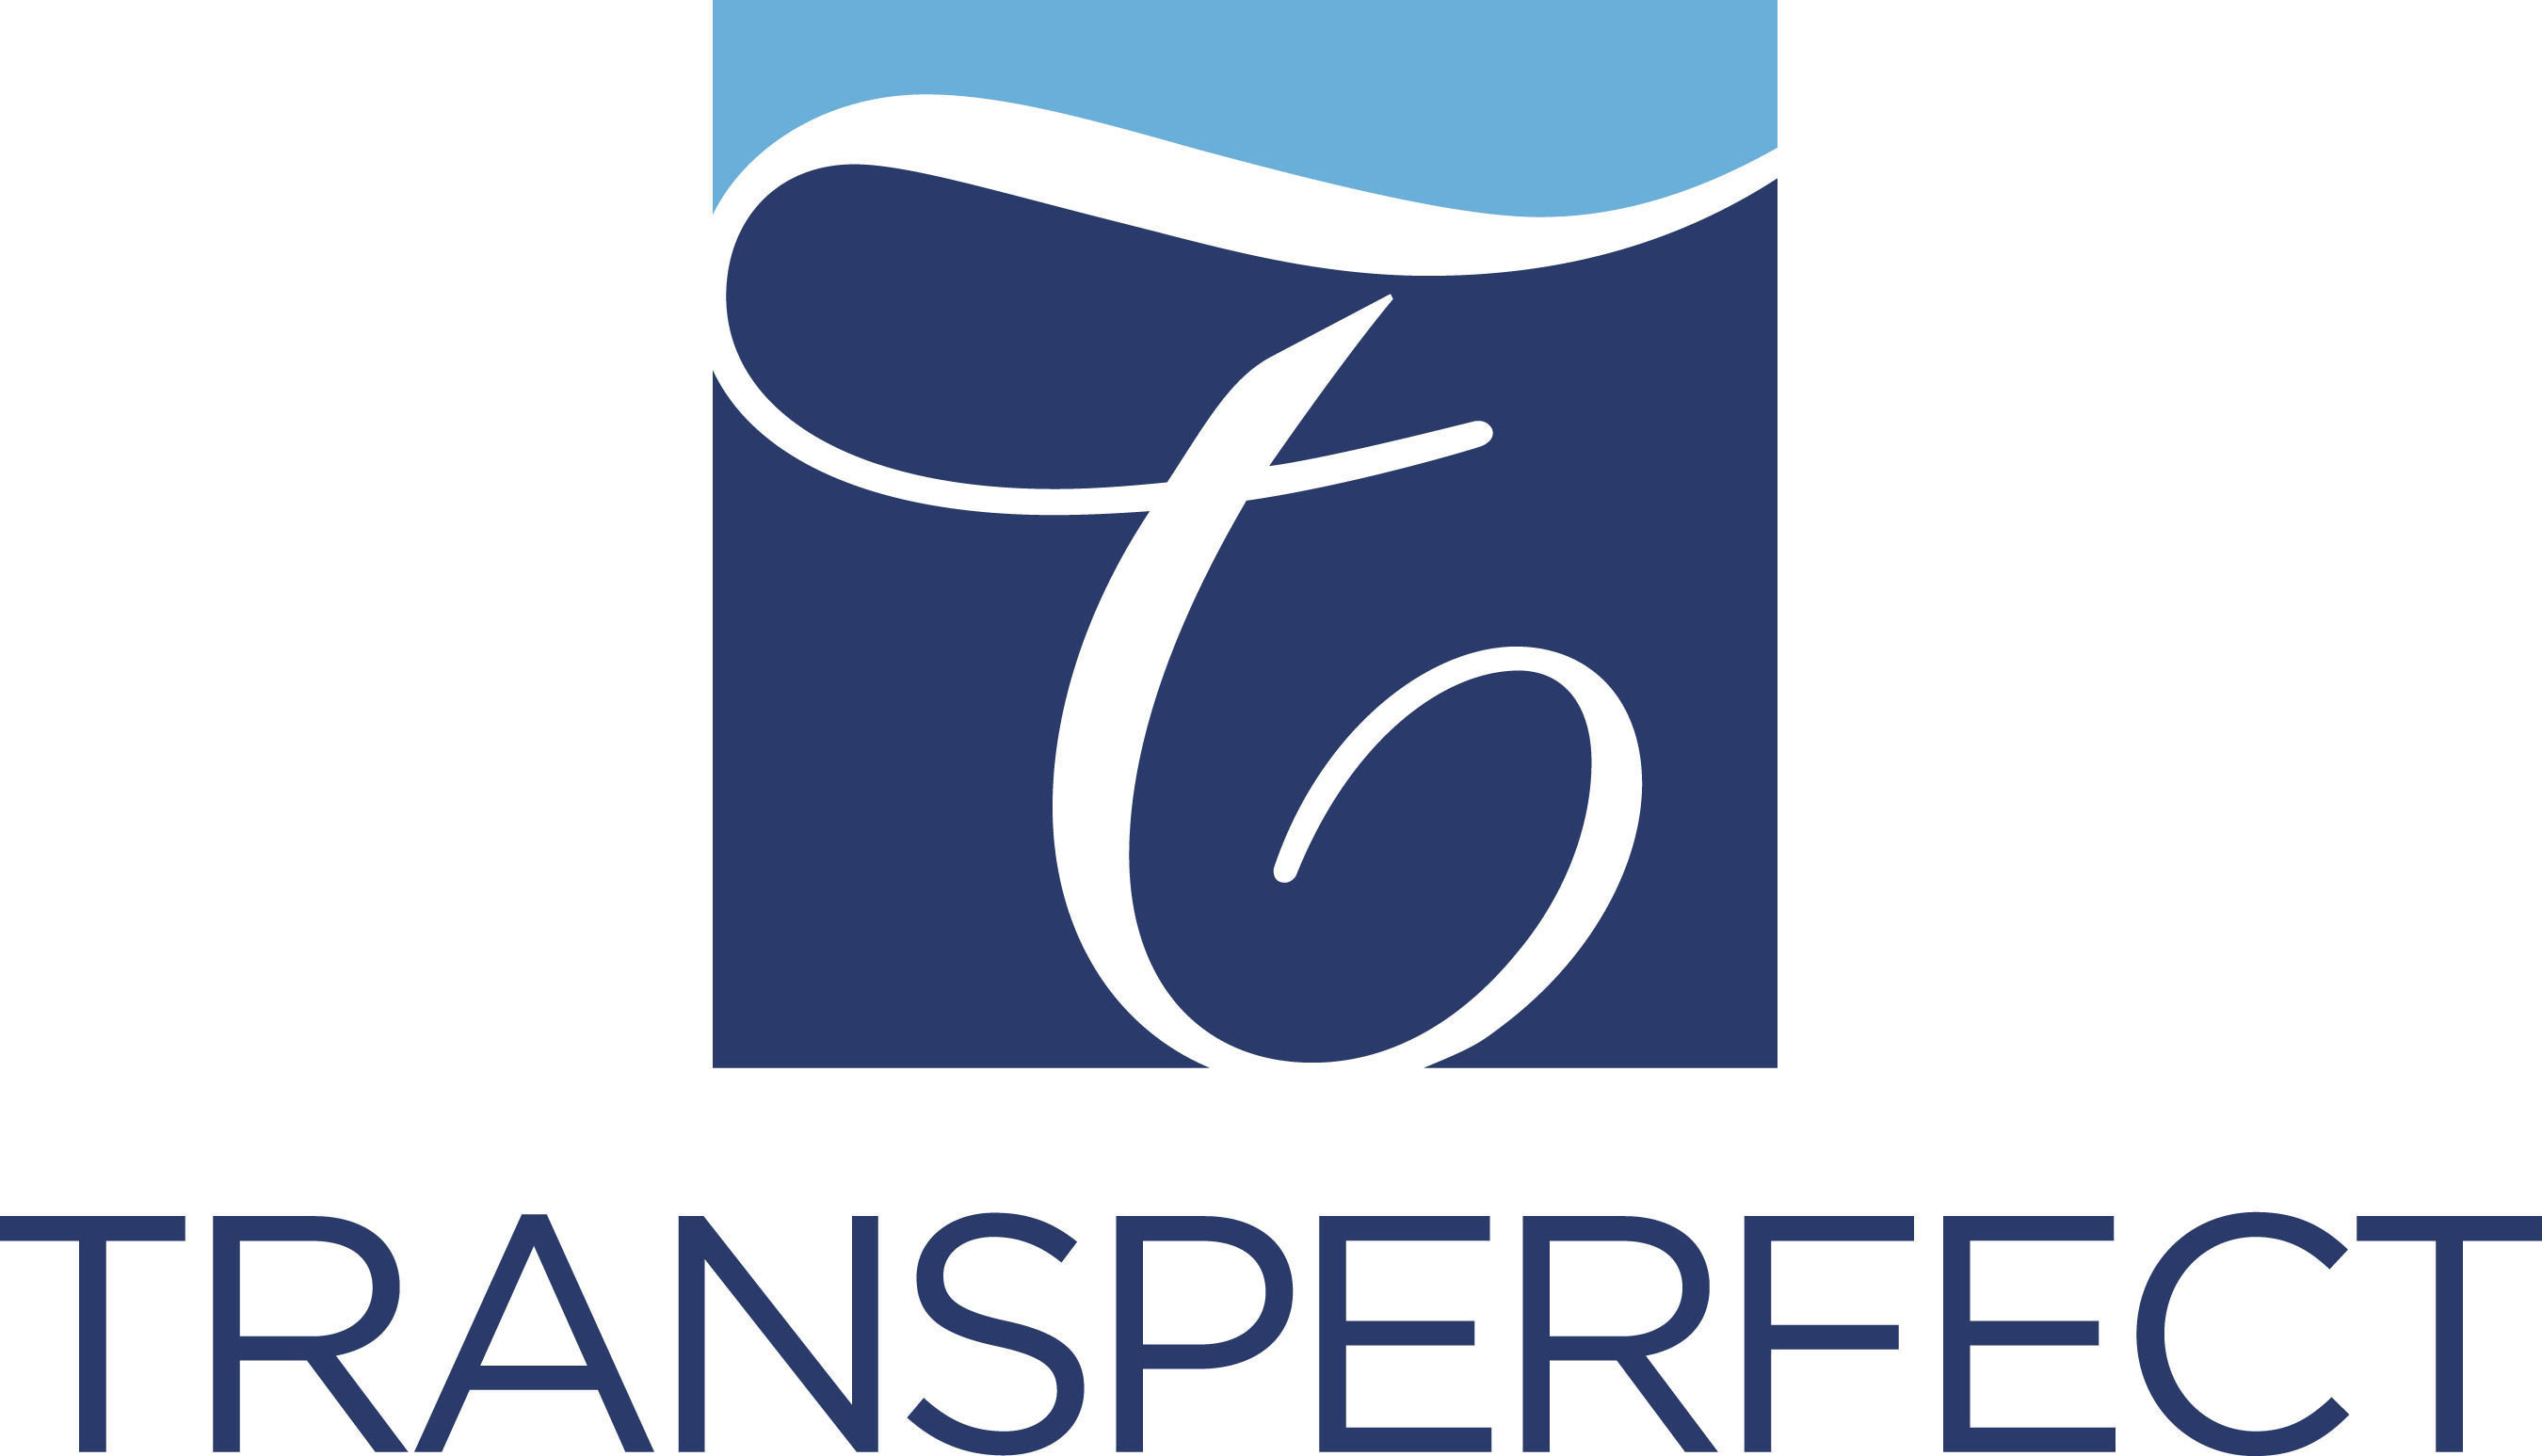 TransPerfect is the world's largest privately held provider of language and technology solutions.